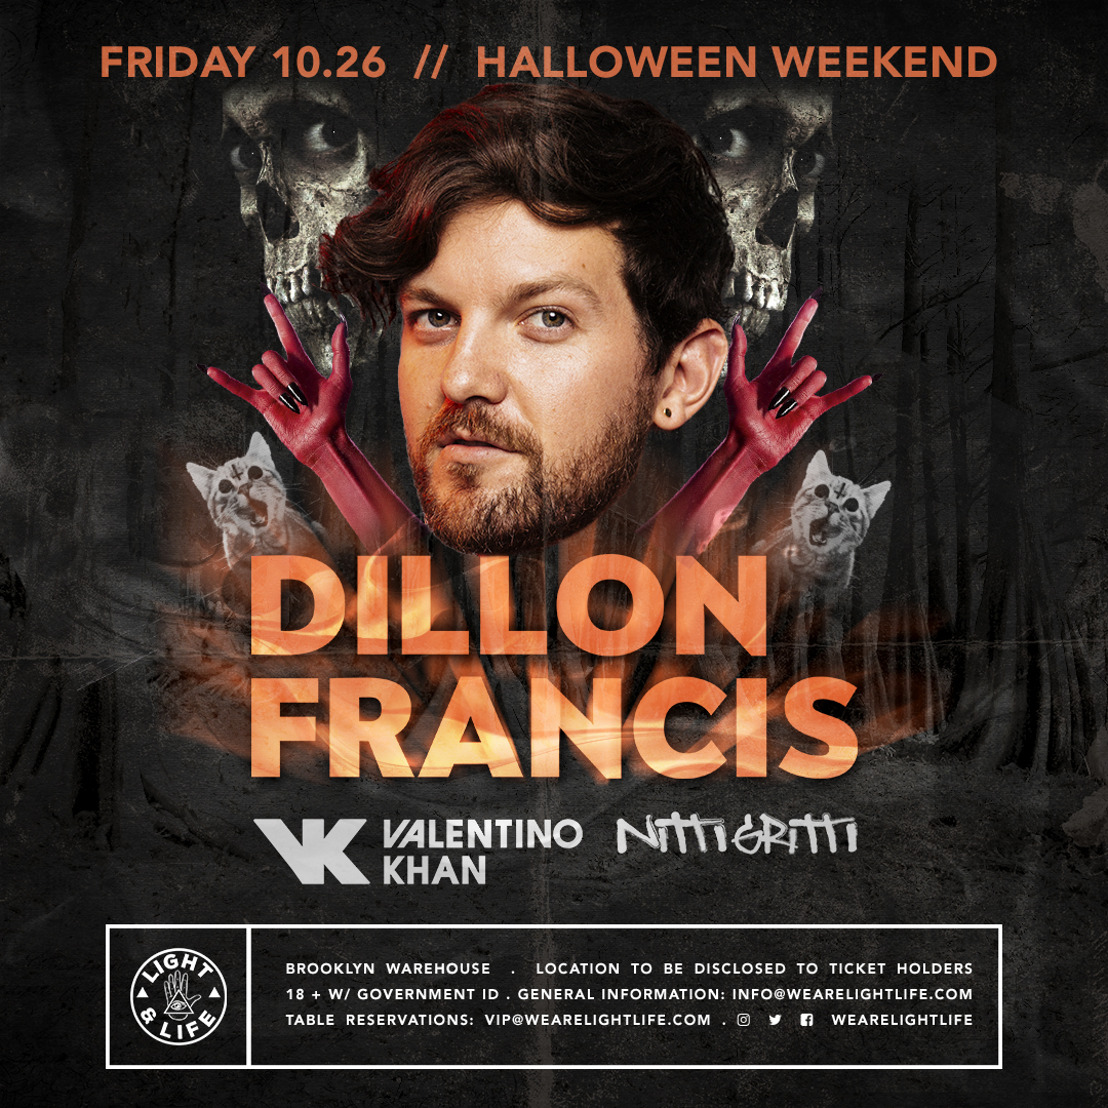 Light & Life Announces NYC Halloween Weekend Event